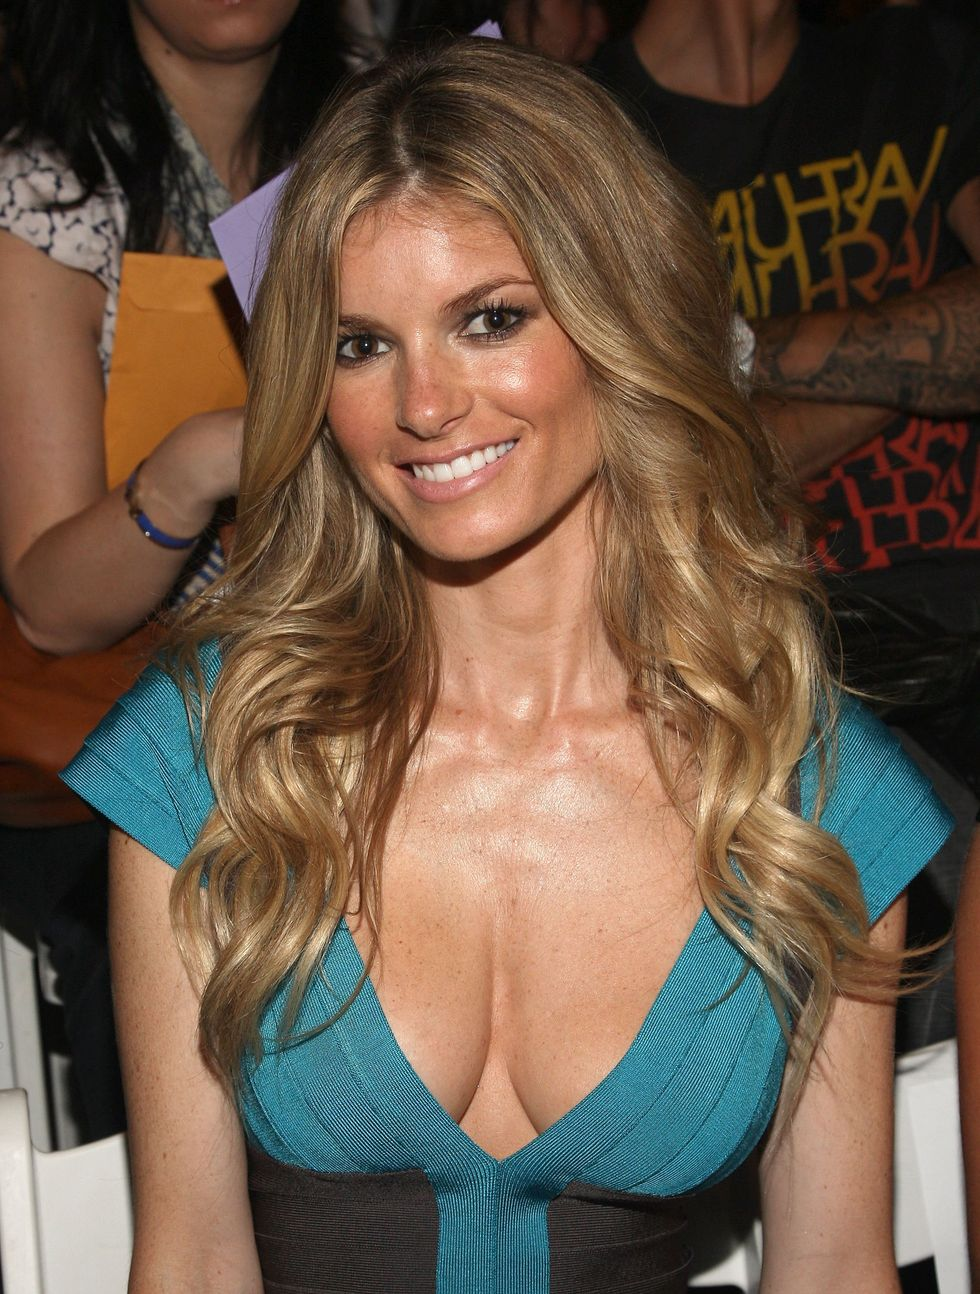 Marisa Miller naked (76 photo), hot Feet, Instagram, cleavage 2017